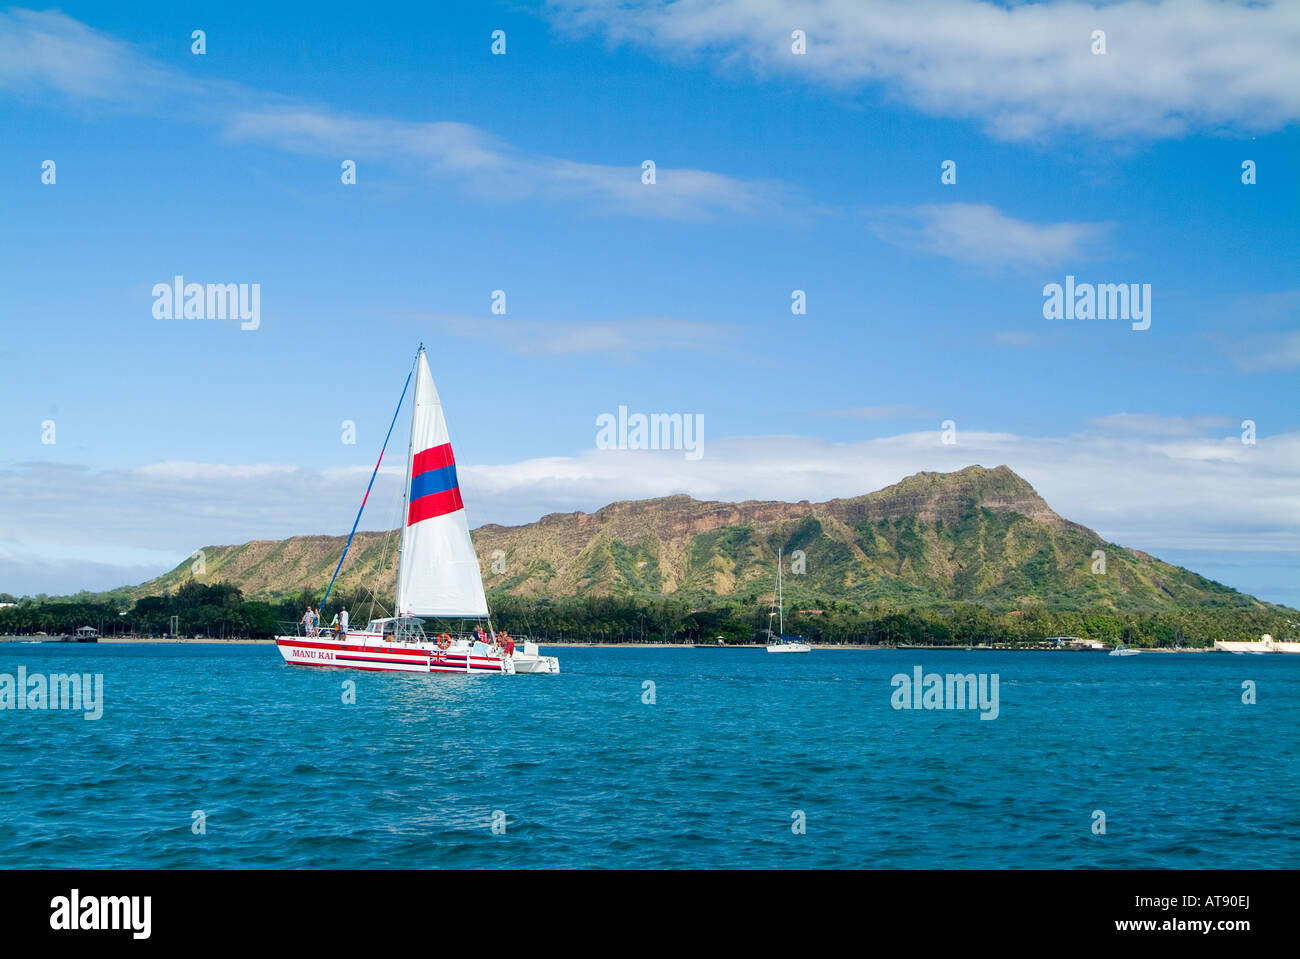 A catamaran cuts a path on the clear blue water in front of Diamond Head, Stock Photo